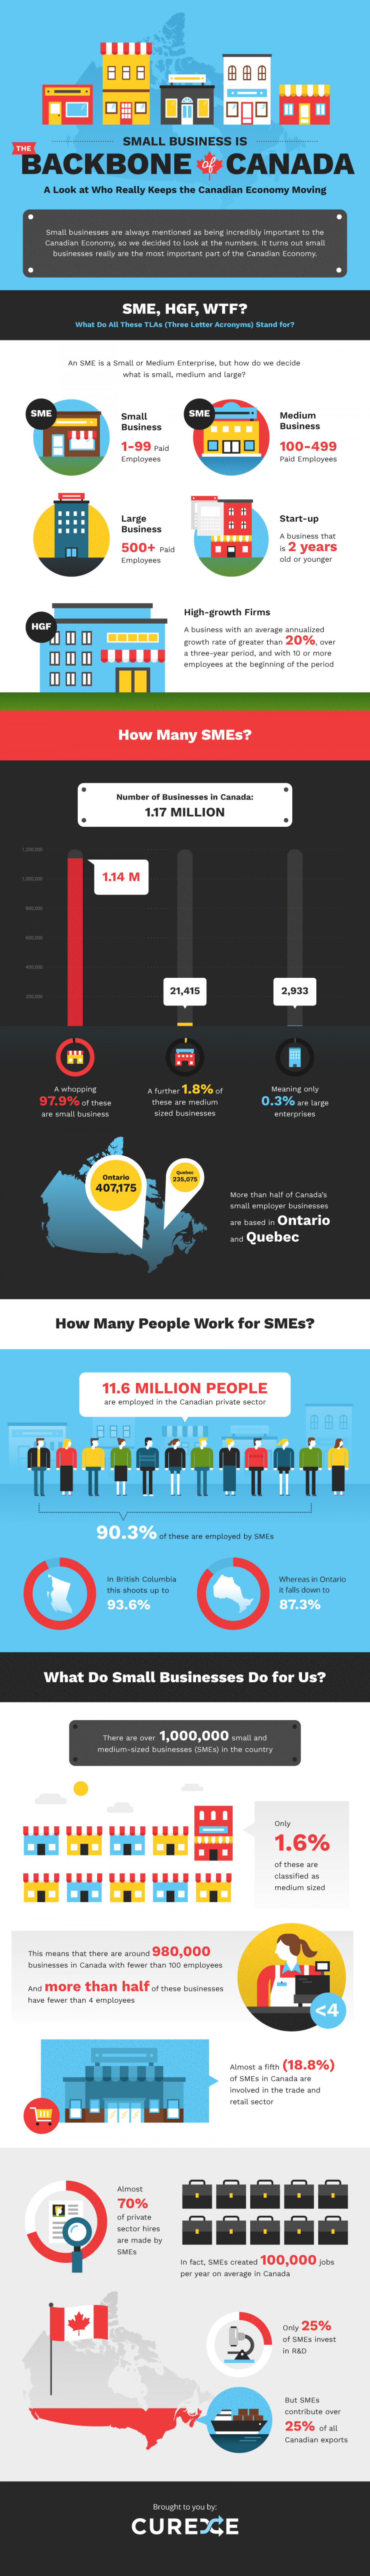 Small Business is The Backbone of Canada Infographic